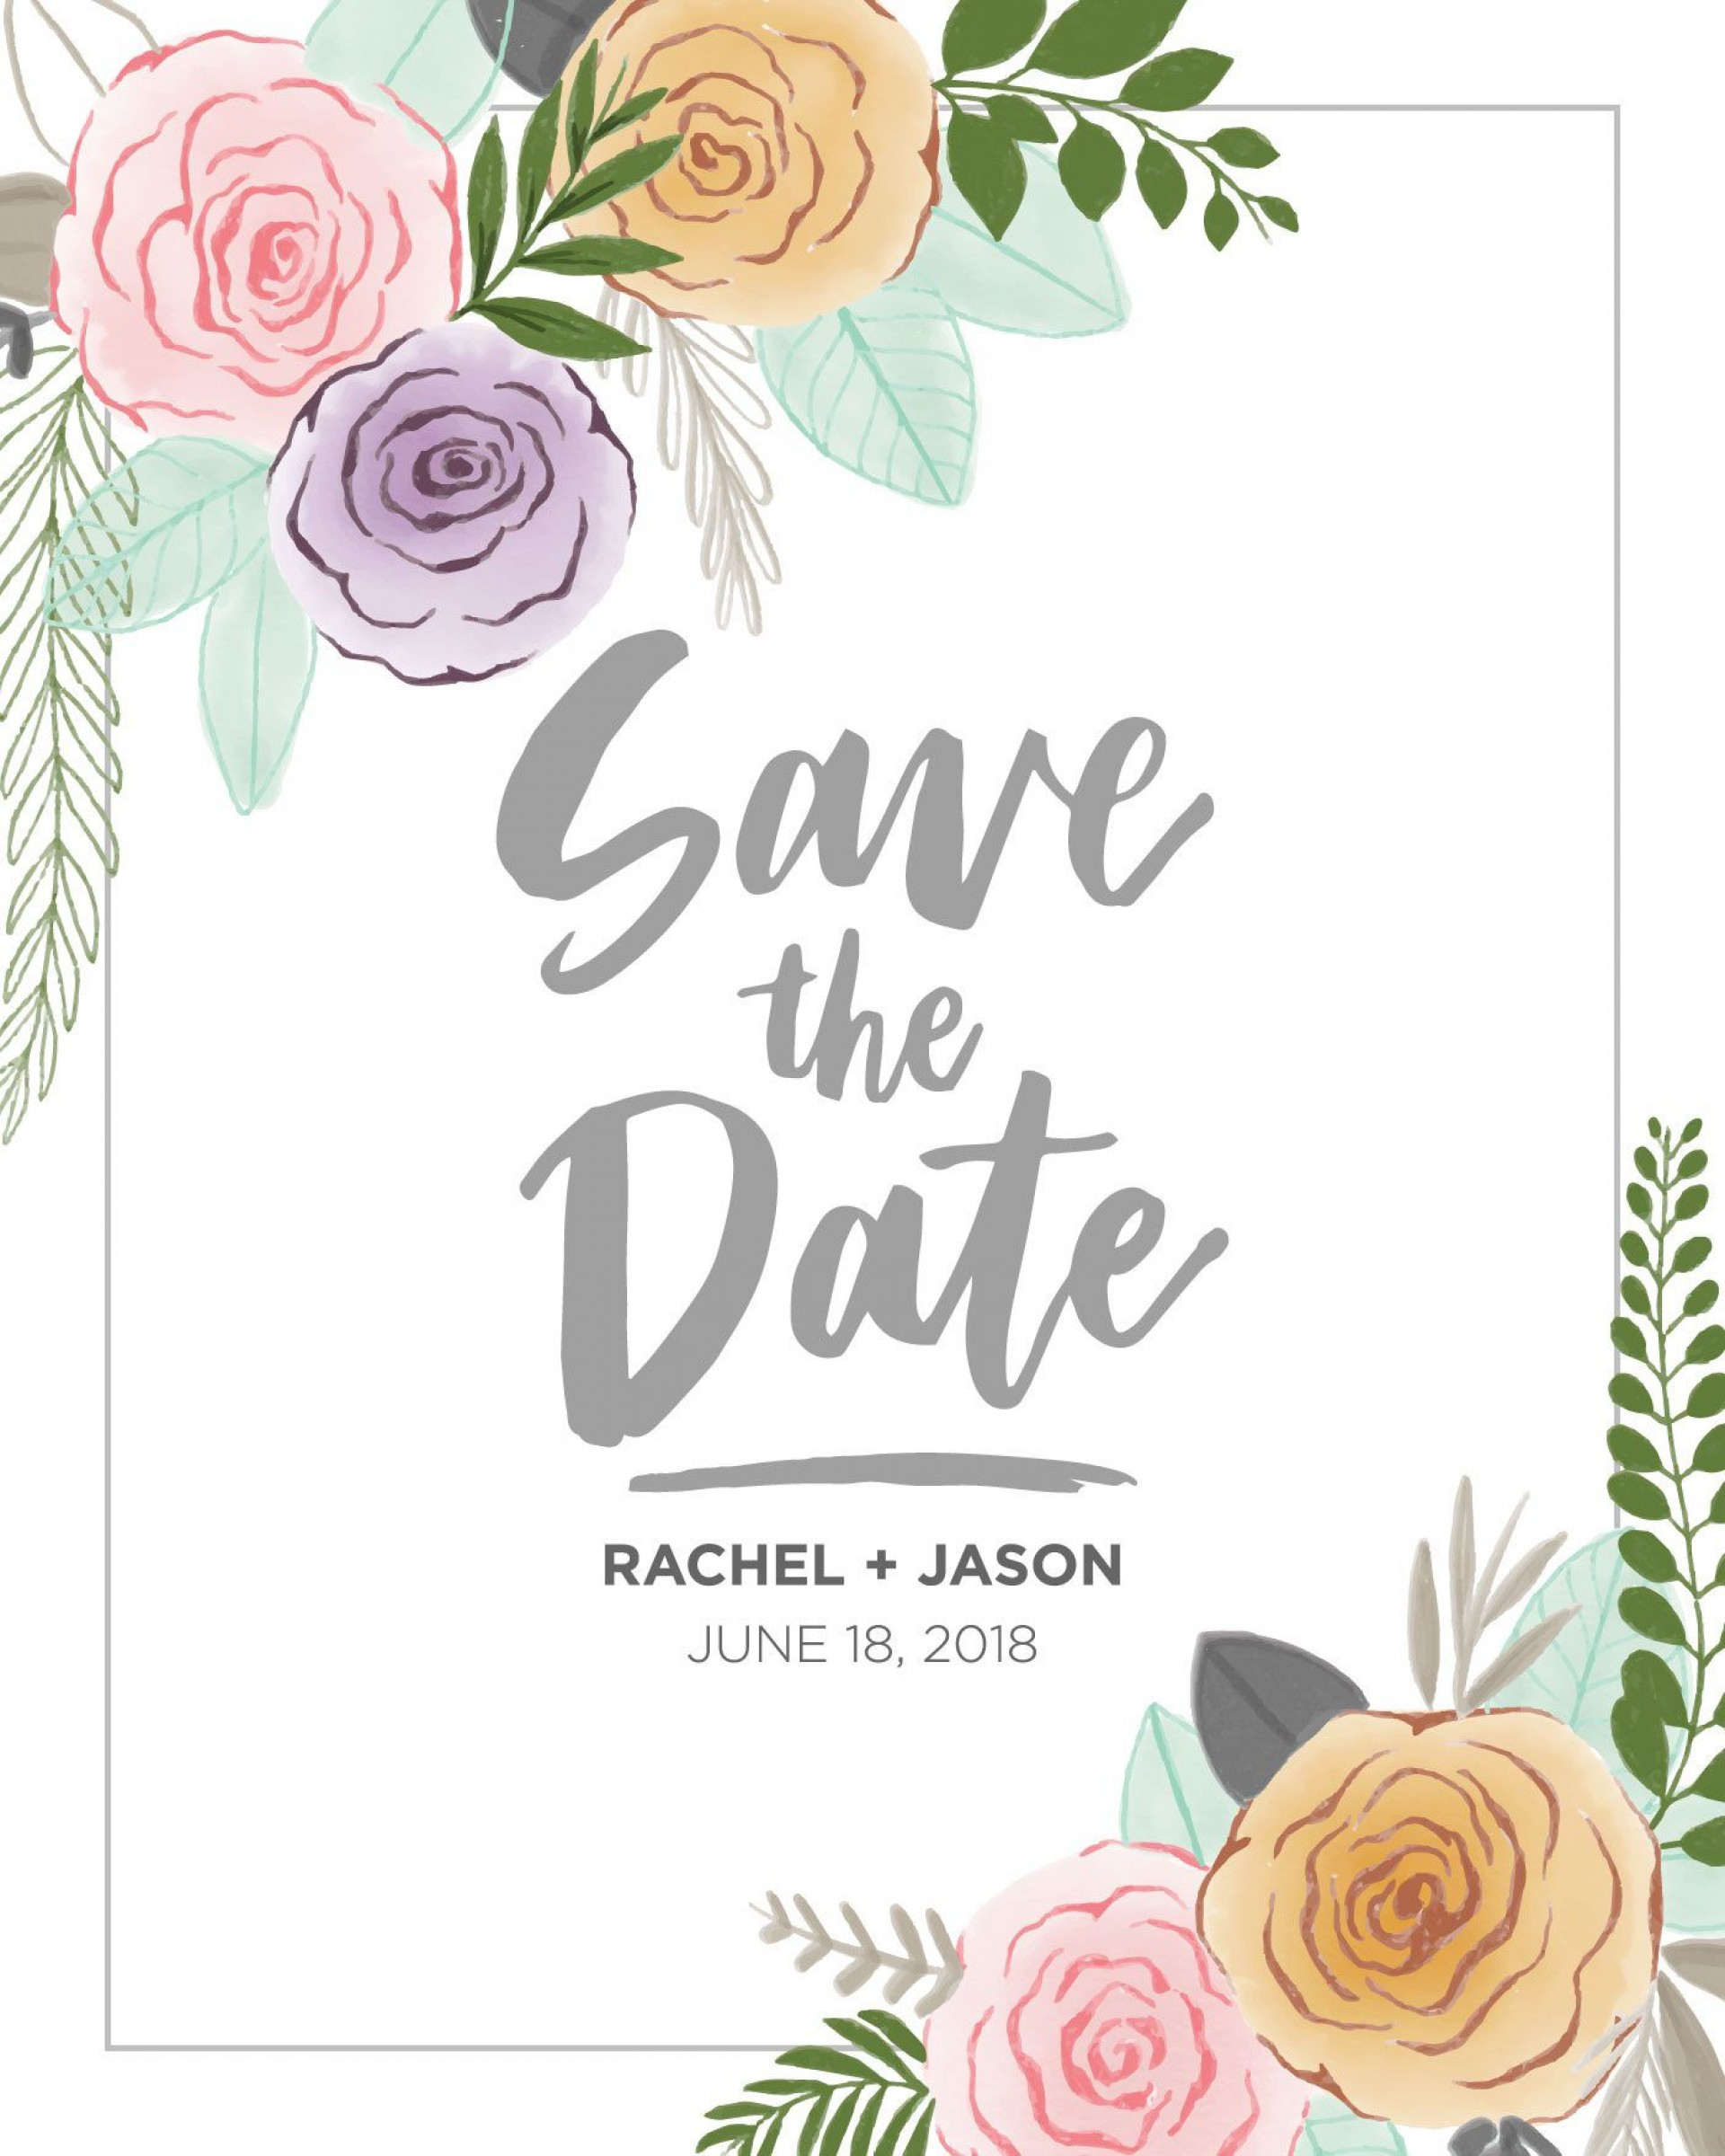 007 Breathtaking Save The Date Template Photoshop Sample  Adobe Card1920